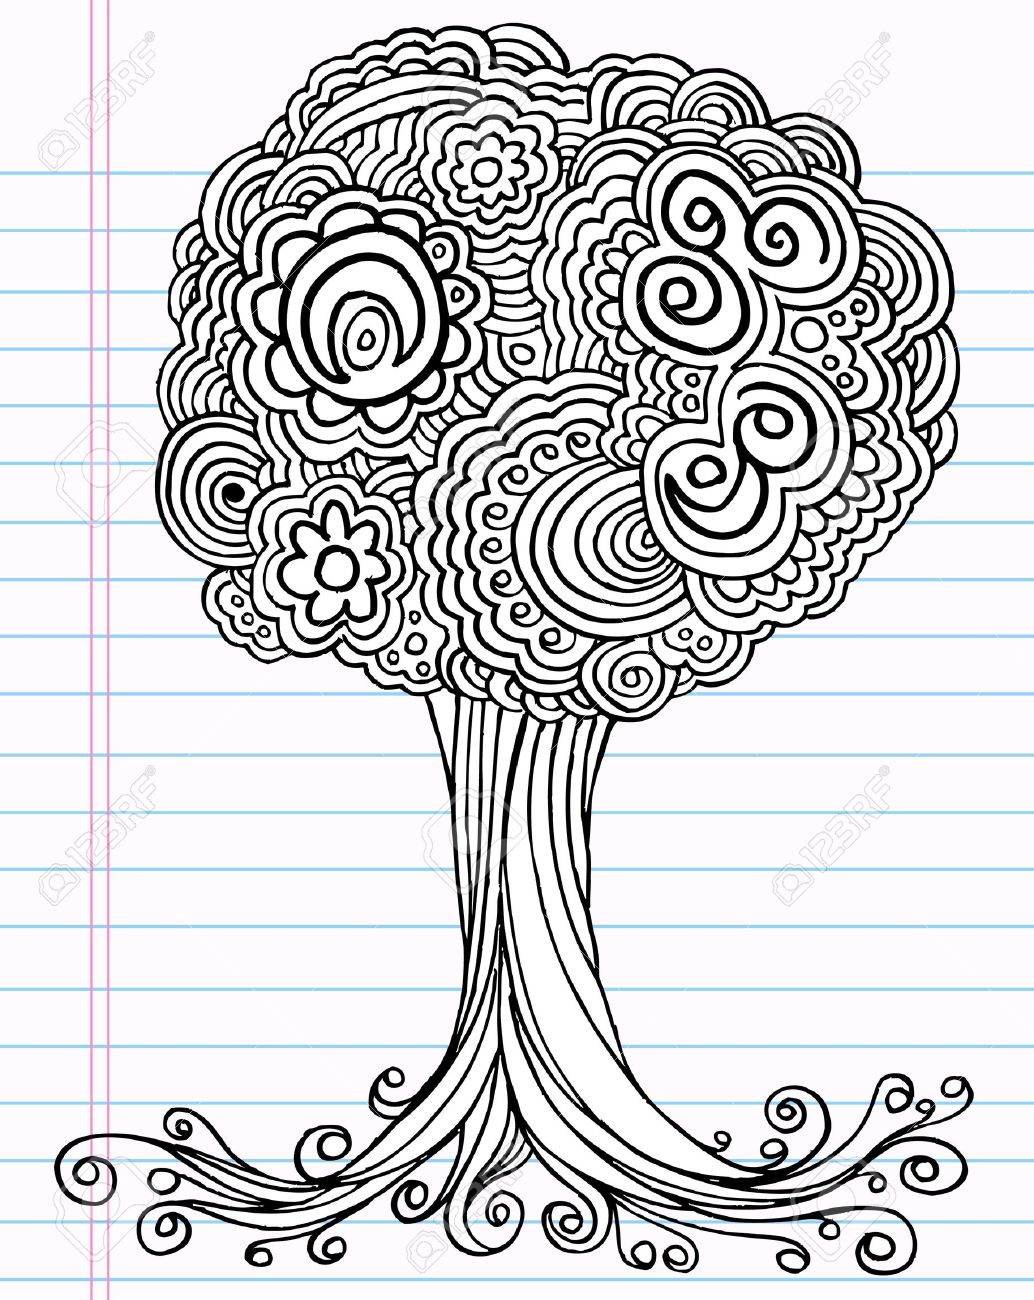 Notebook Doodle Sketch Henna Tree Drawing Illustration Art Royalty